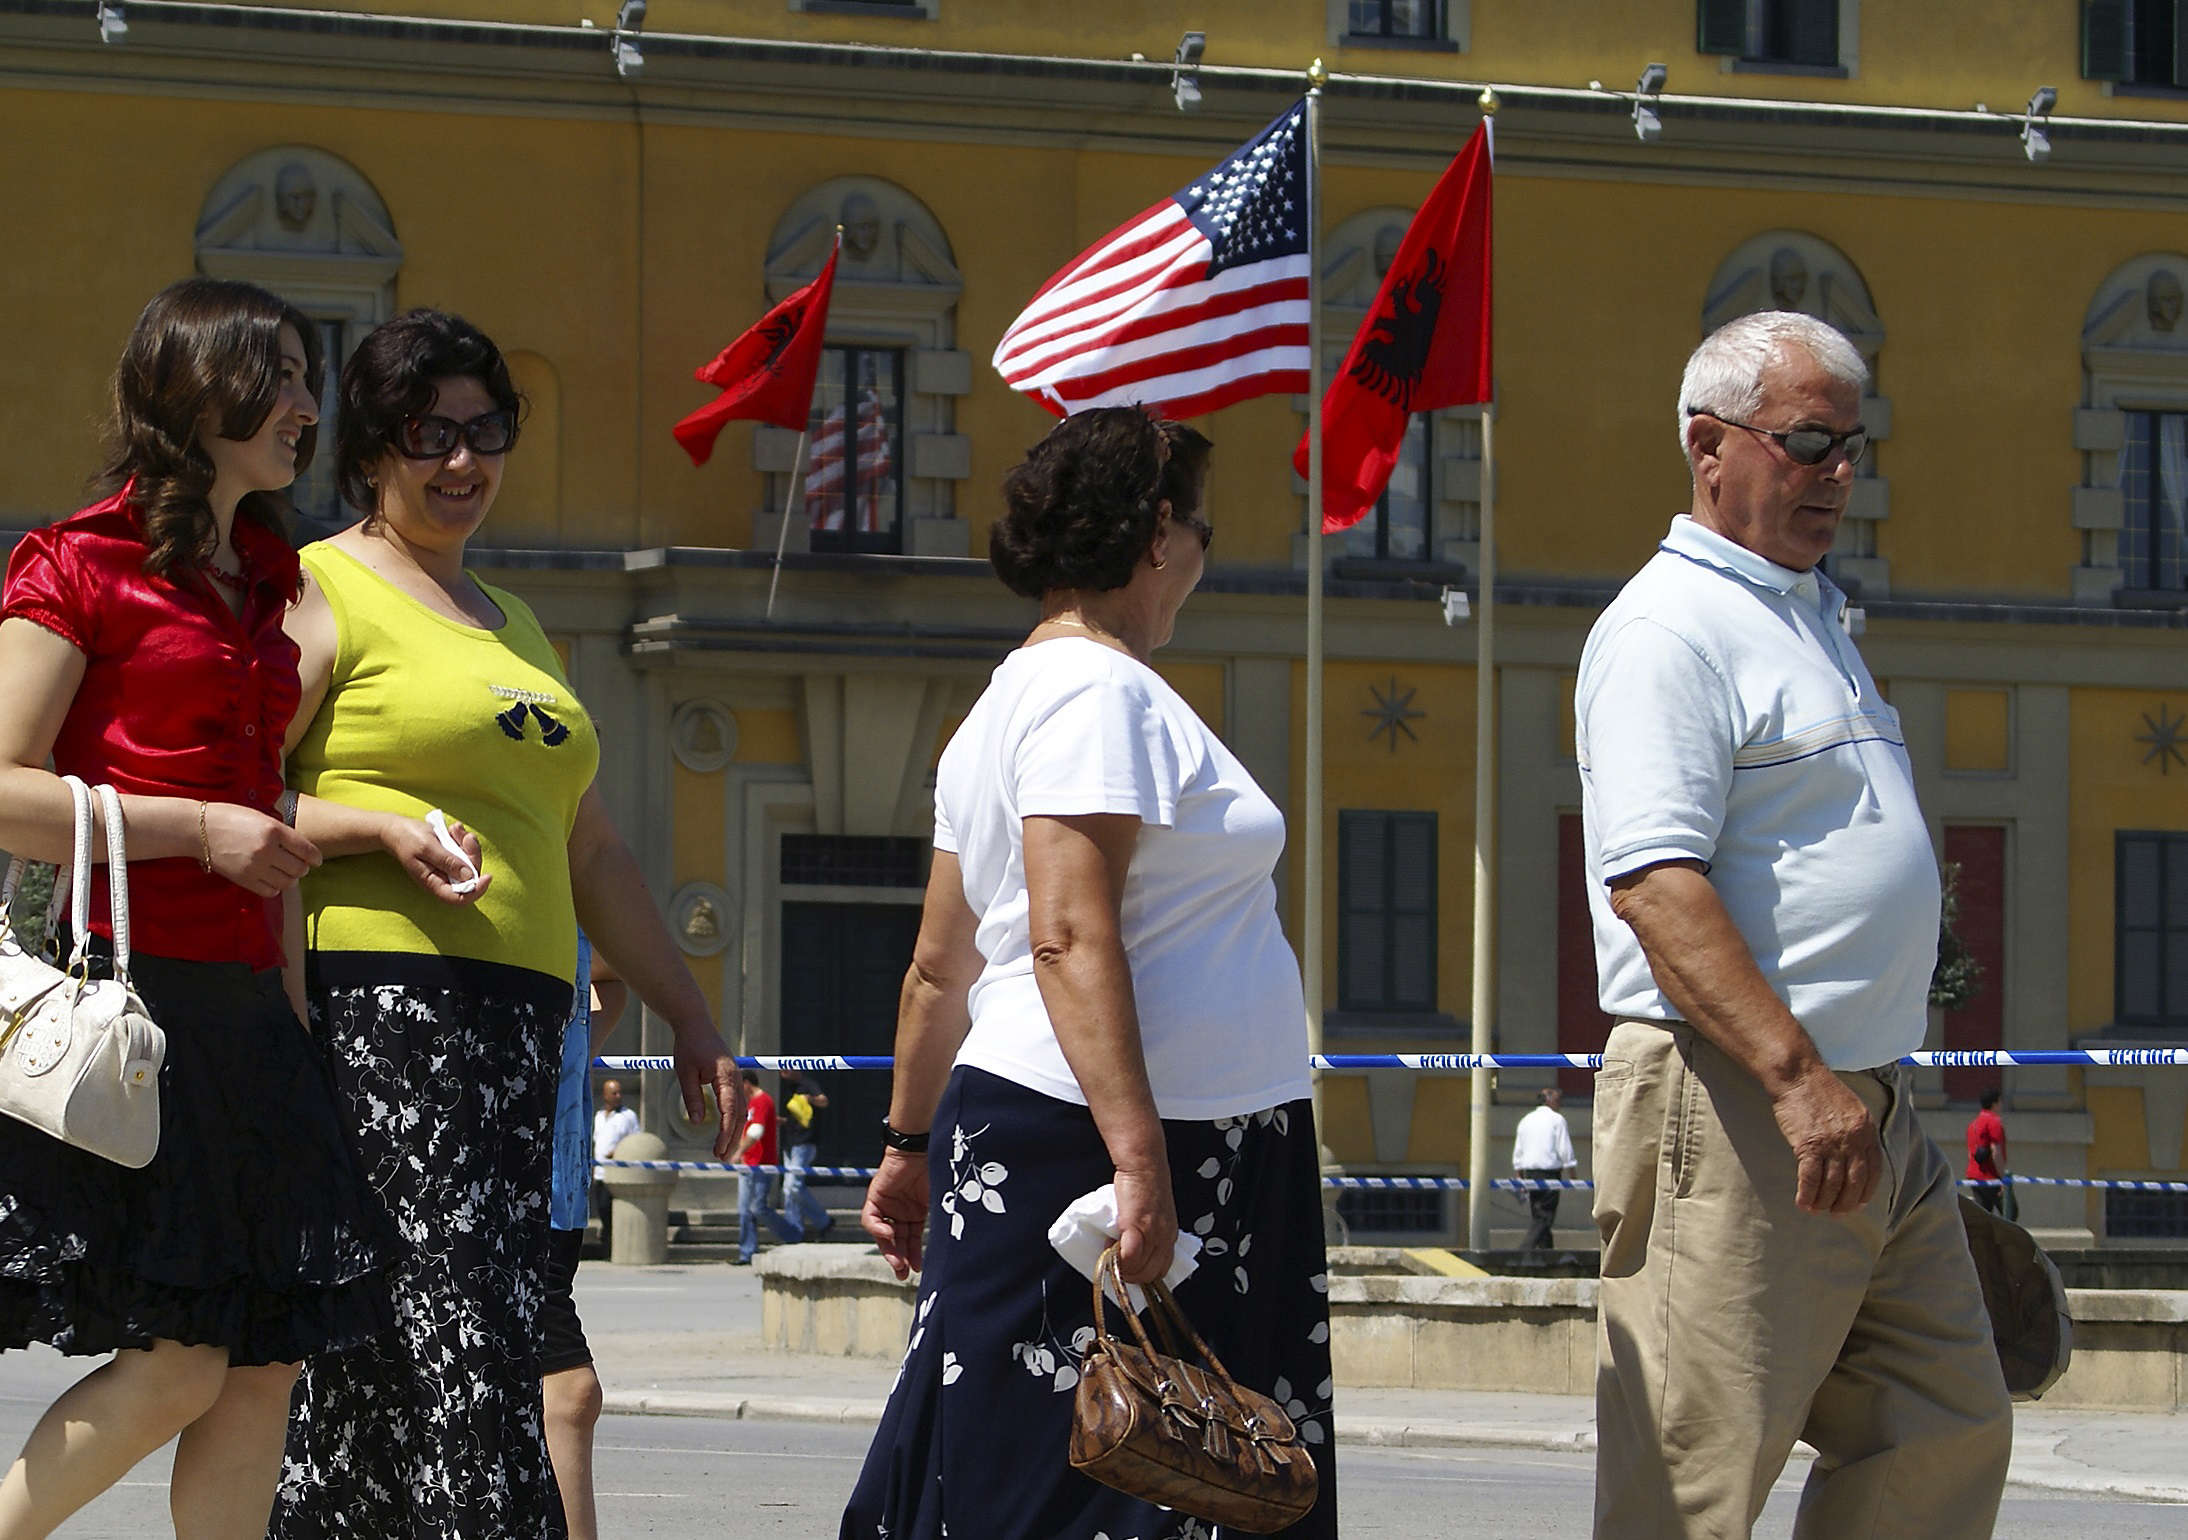 Slide 19 of 35: NBC News -- Pictured: A Tirana family -- U.S. President George Bush visits Tirana, the capital city of Albania on June 10, 2007  (Photo by Andy Eckardt/NBC/NBCU Photo Bank via Getty Images)